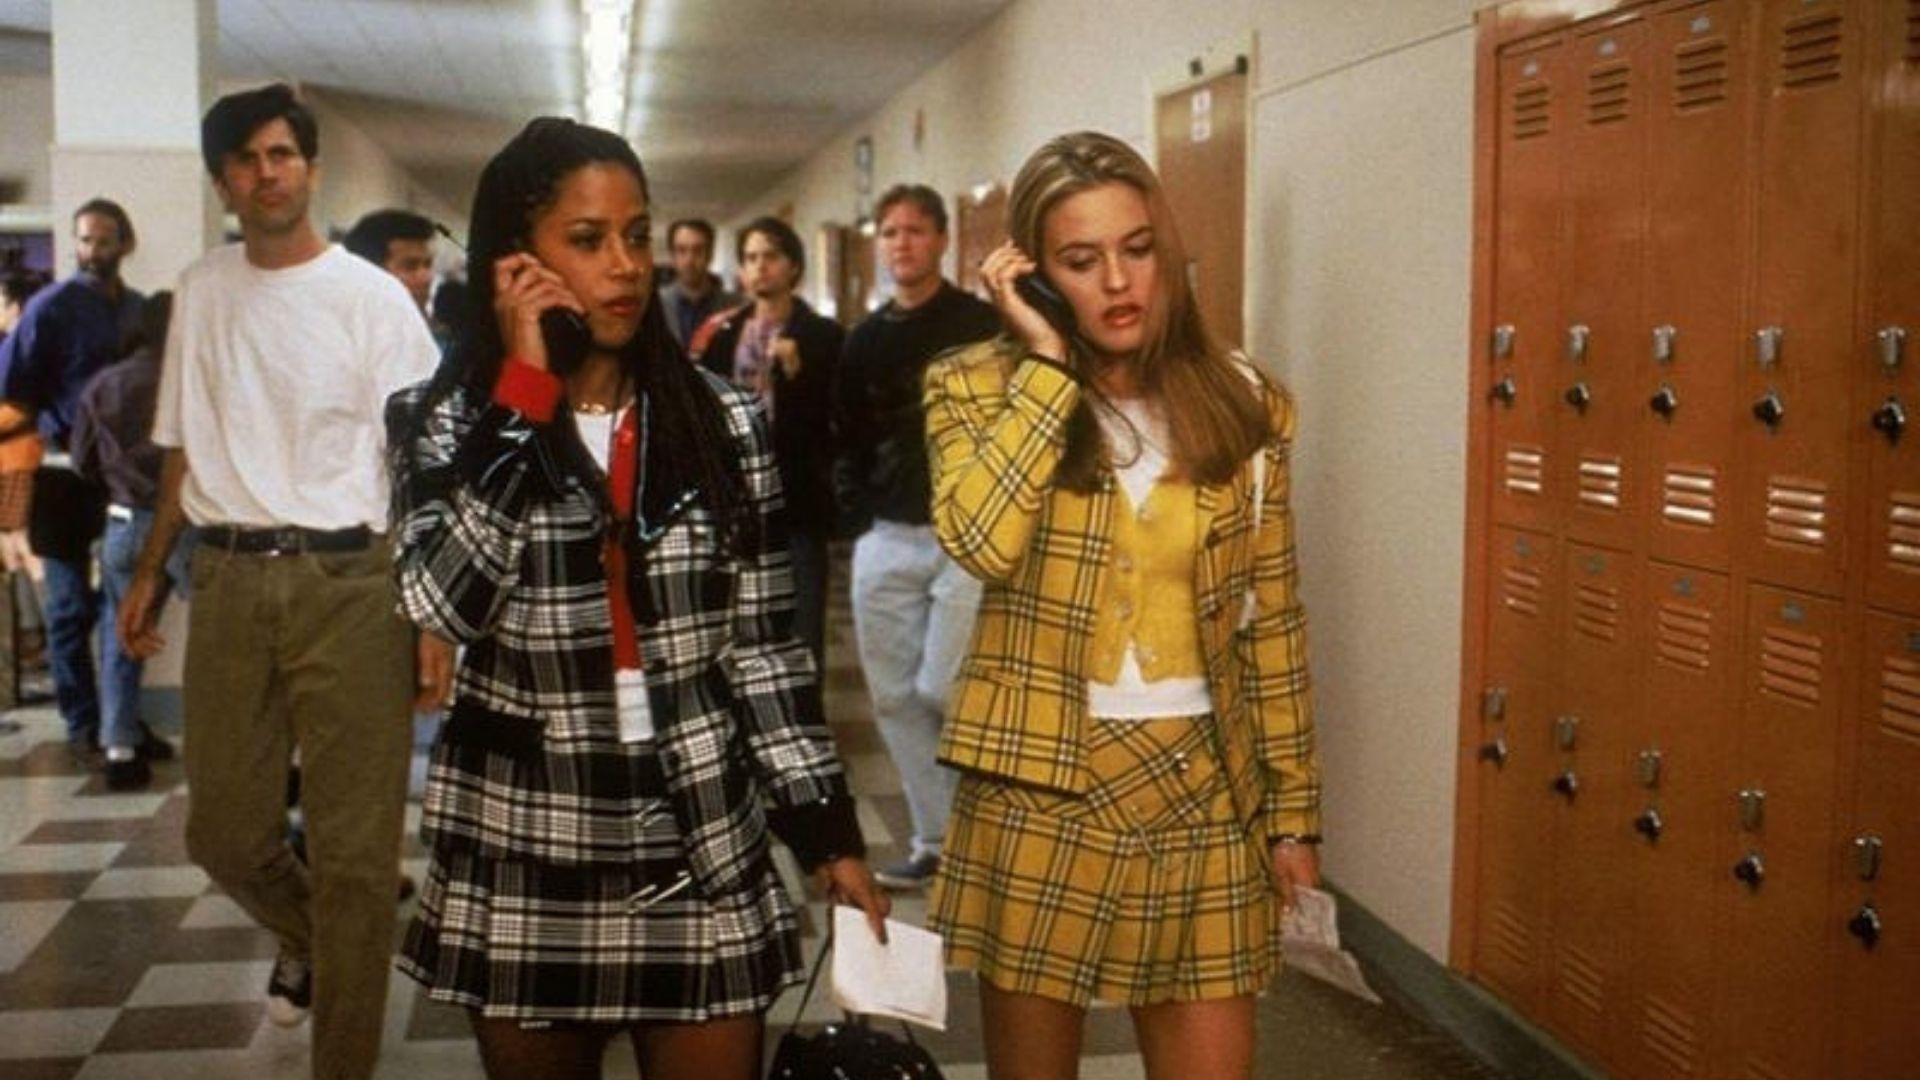 Fans Are Not Happy About The Plot Of The New 'Clueless' Reboot